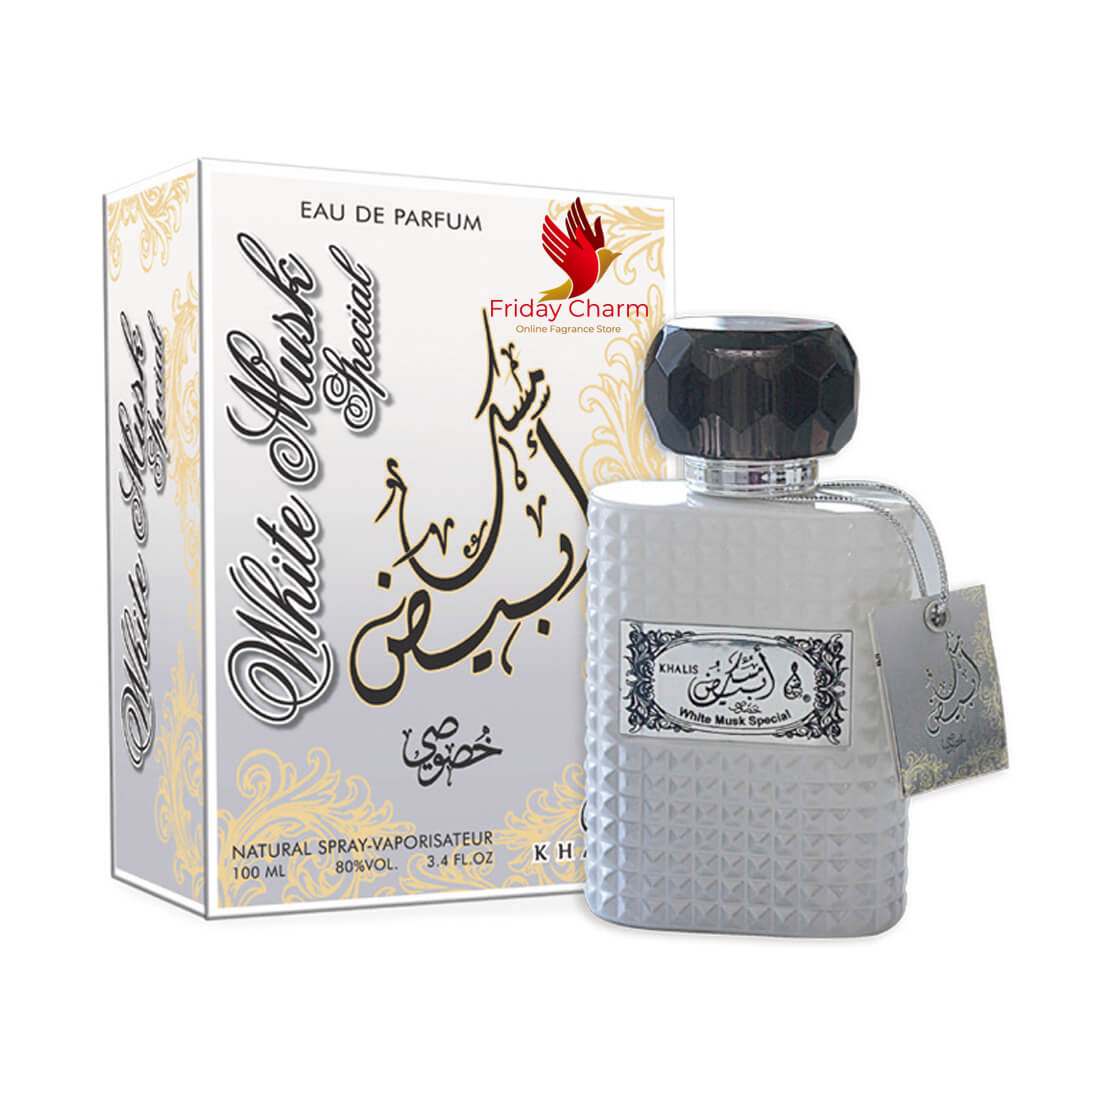 Khalis White Musk Special Fragrance Spray - 100 ml